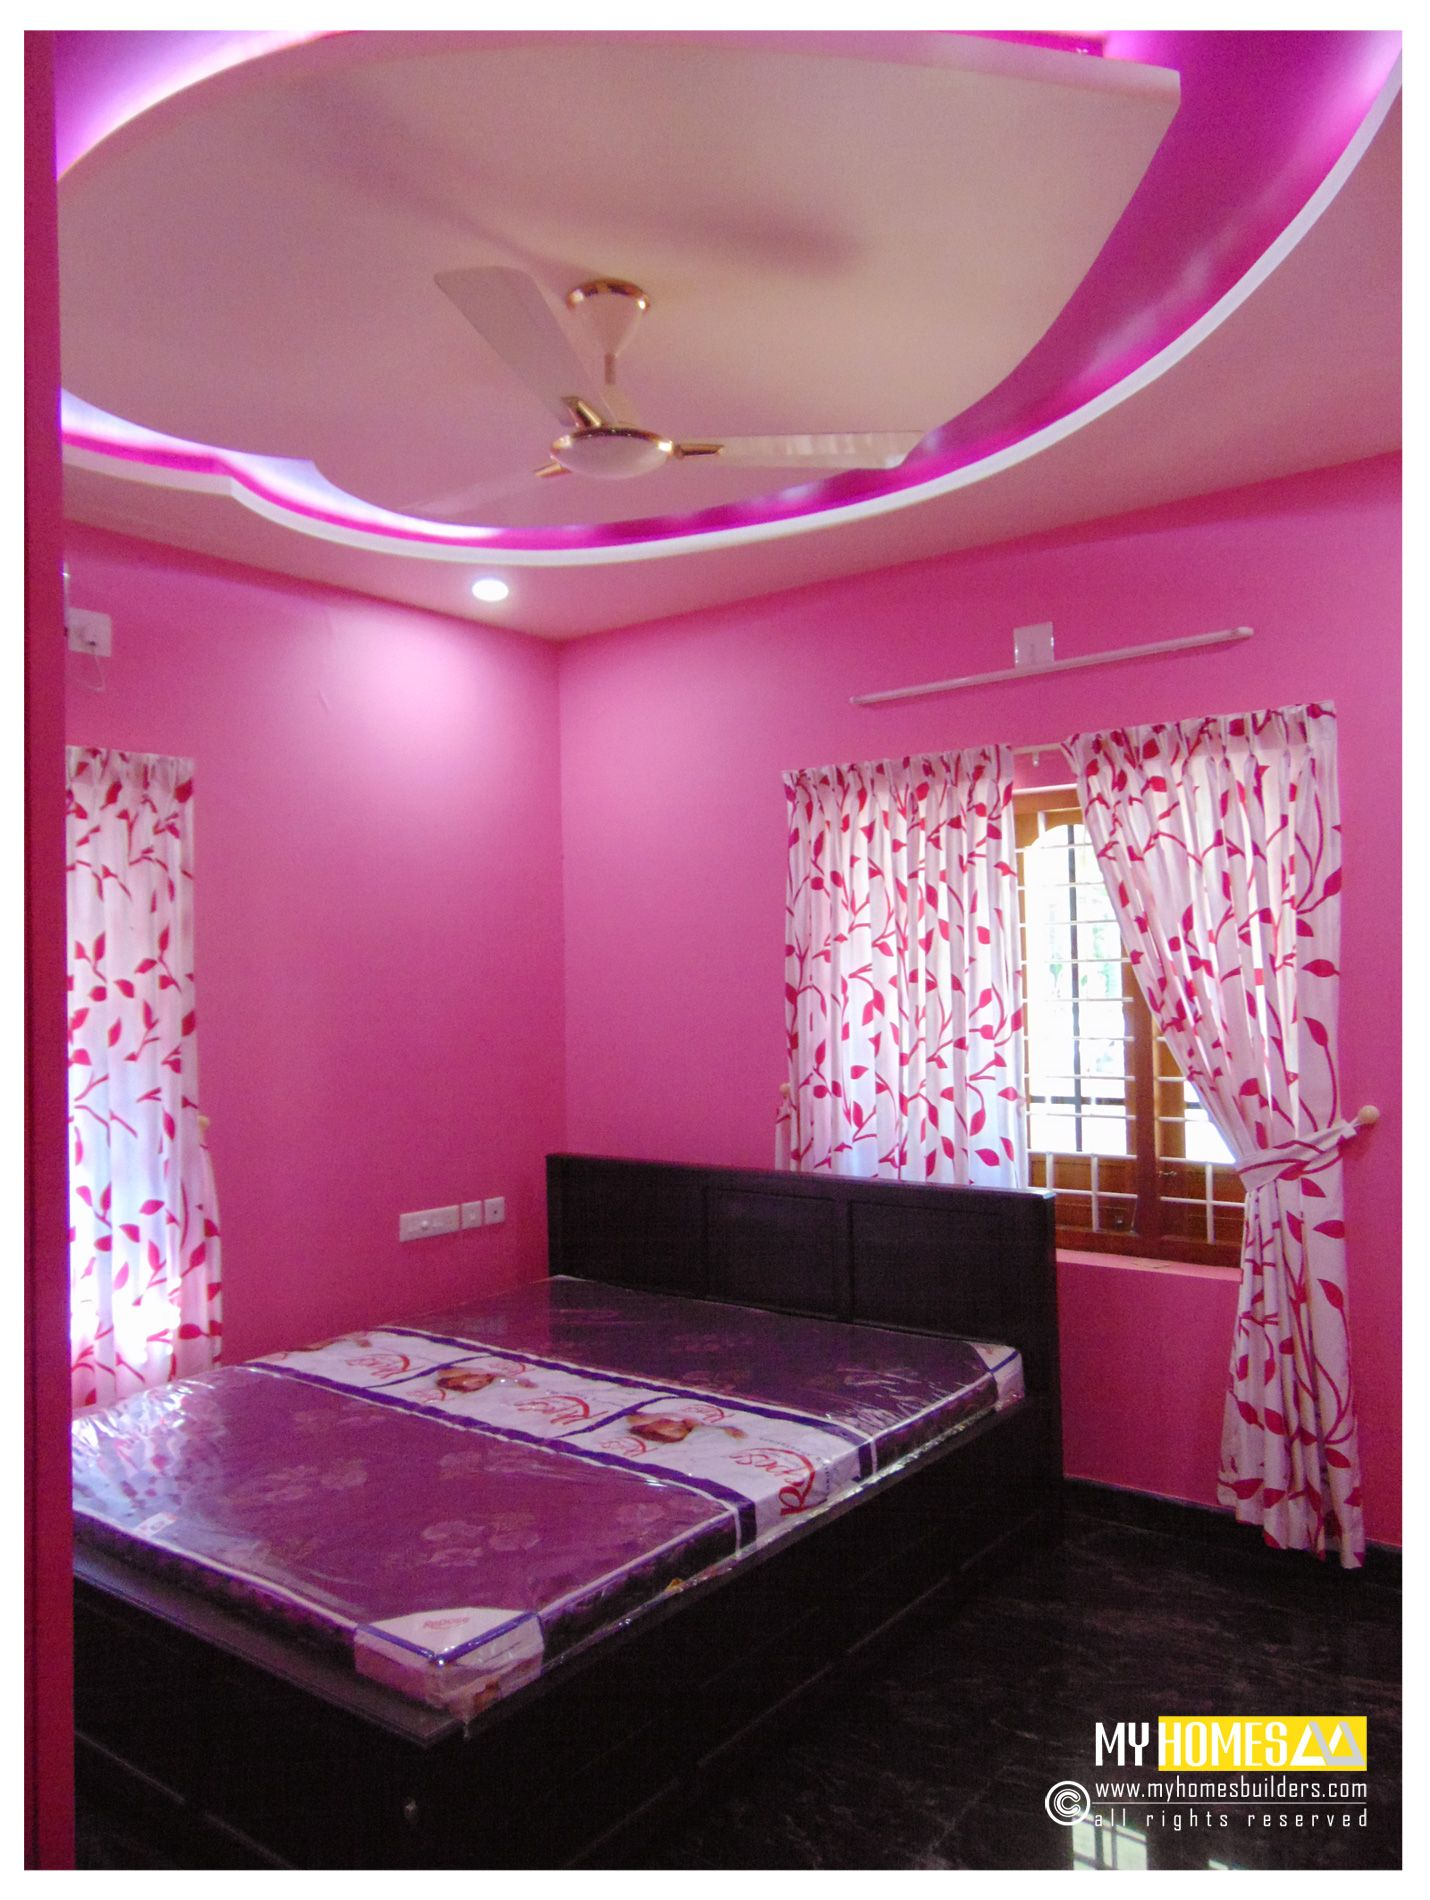 Kerala bedroom interior designs best bed room interior - Designer schlafzimmermobel ...